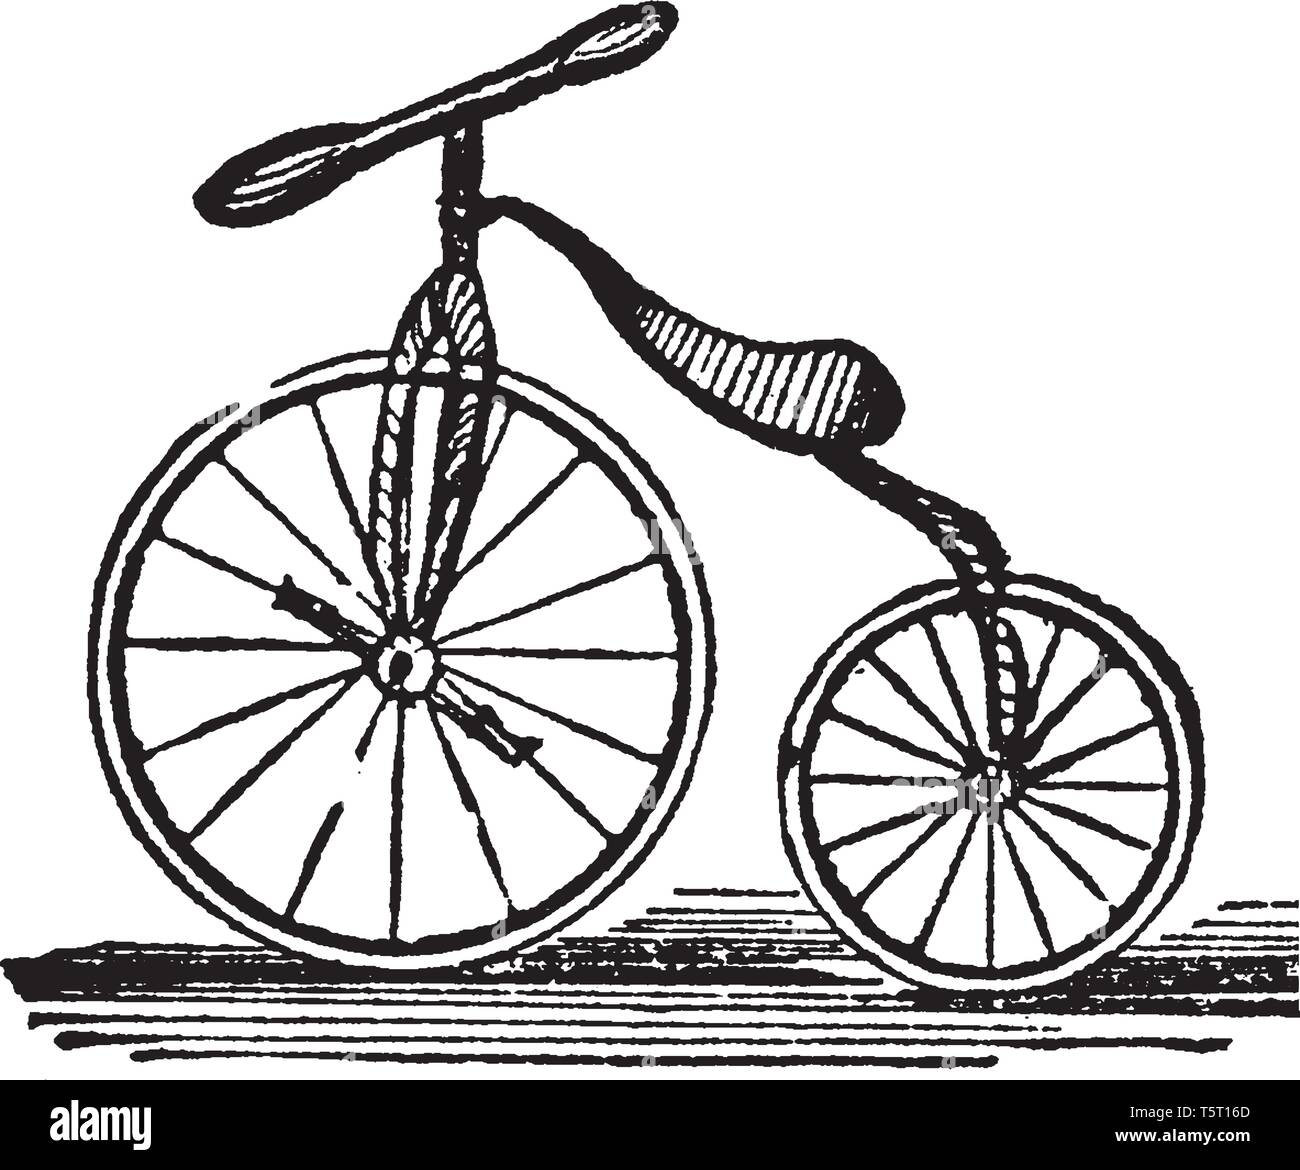 Velocipede is a light road carriage for a single person, vintage line drawing or engraving illustration. - Stock Image